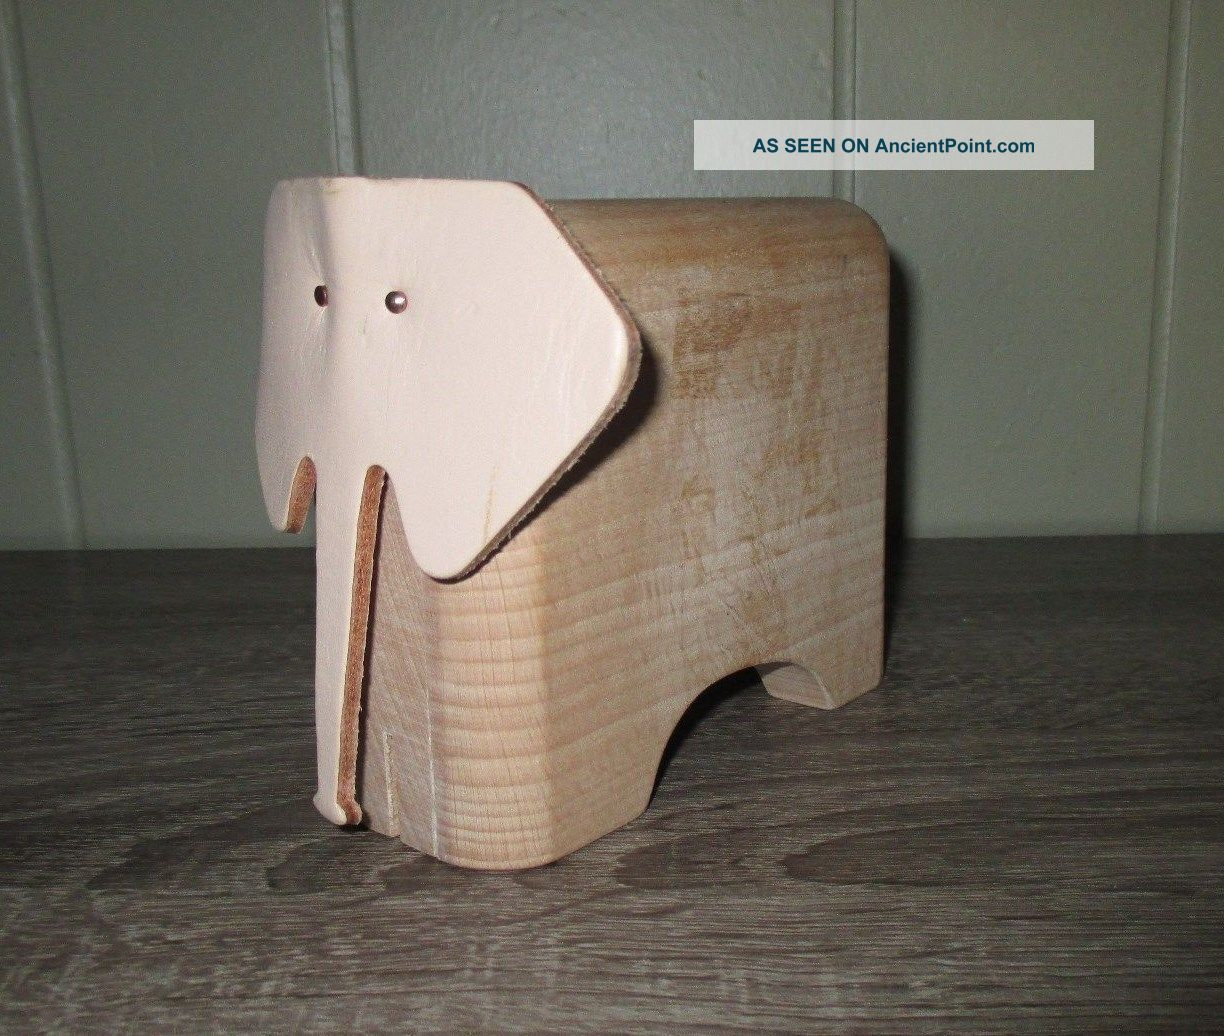 Mid Century Dwell Modern Eames Decor Wood Elephant Sculpture Card Holder - Mid-Century Modernism photo